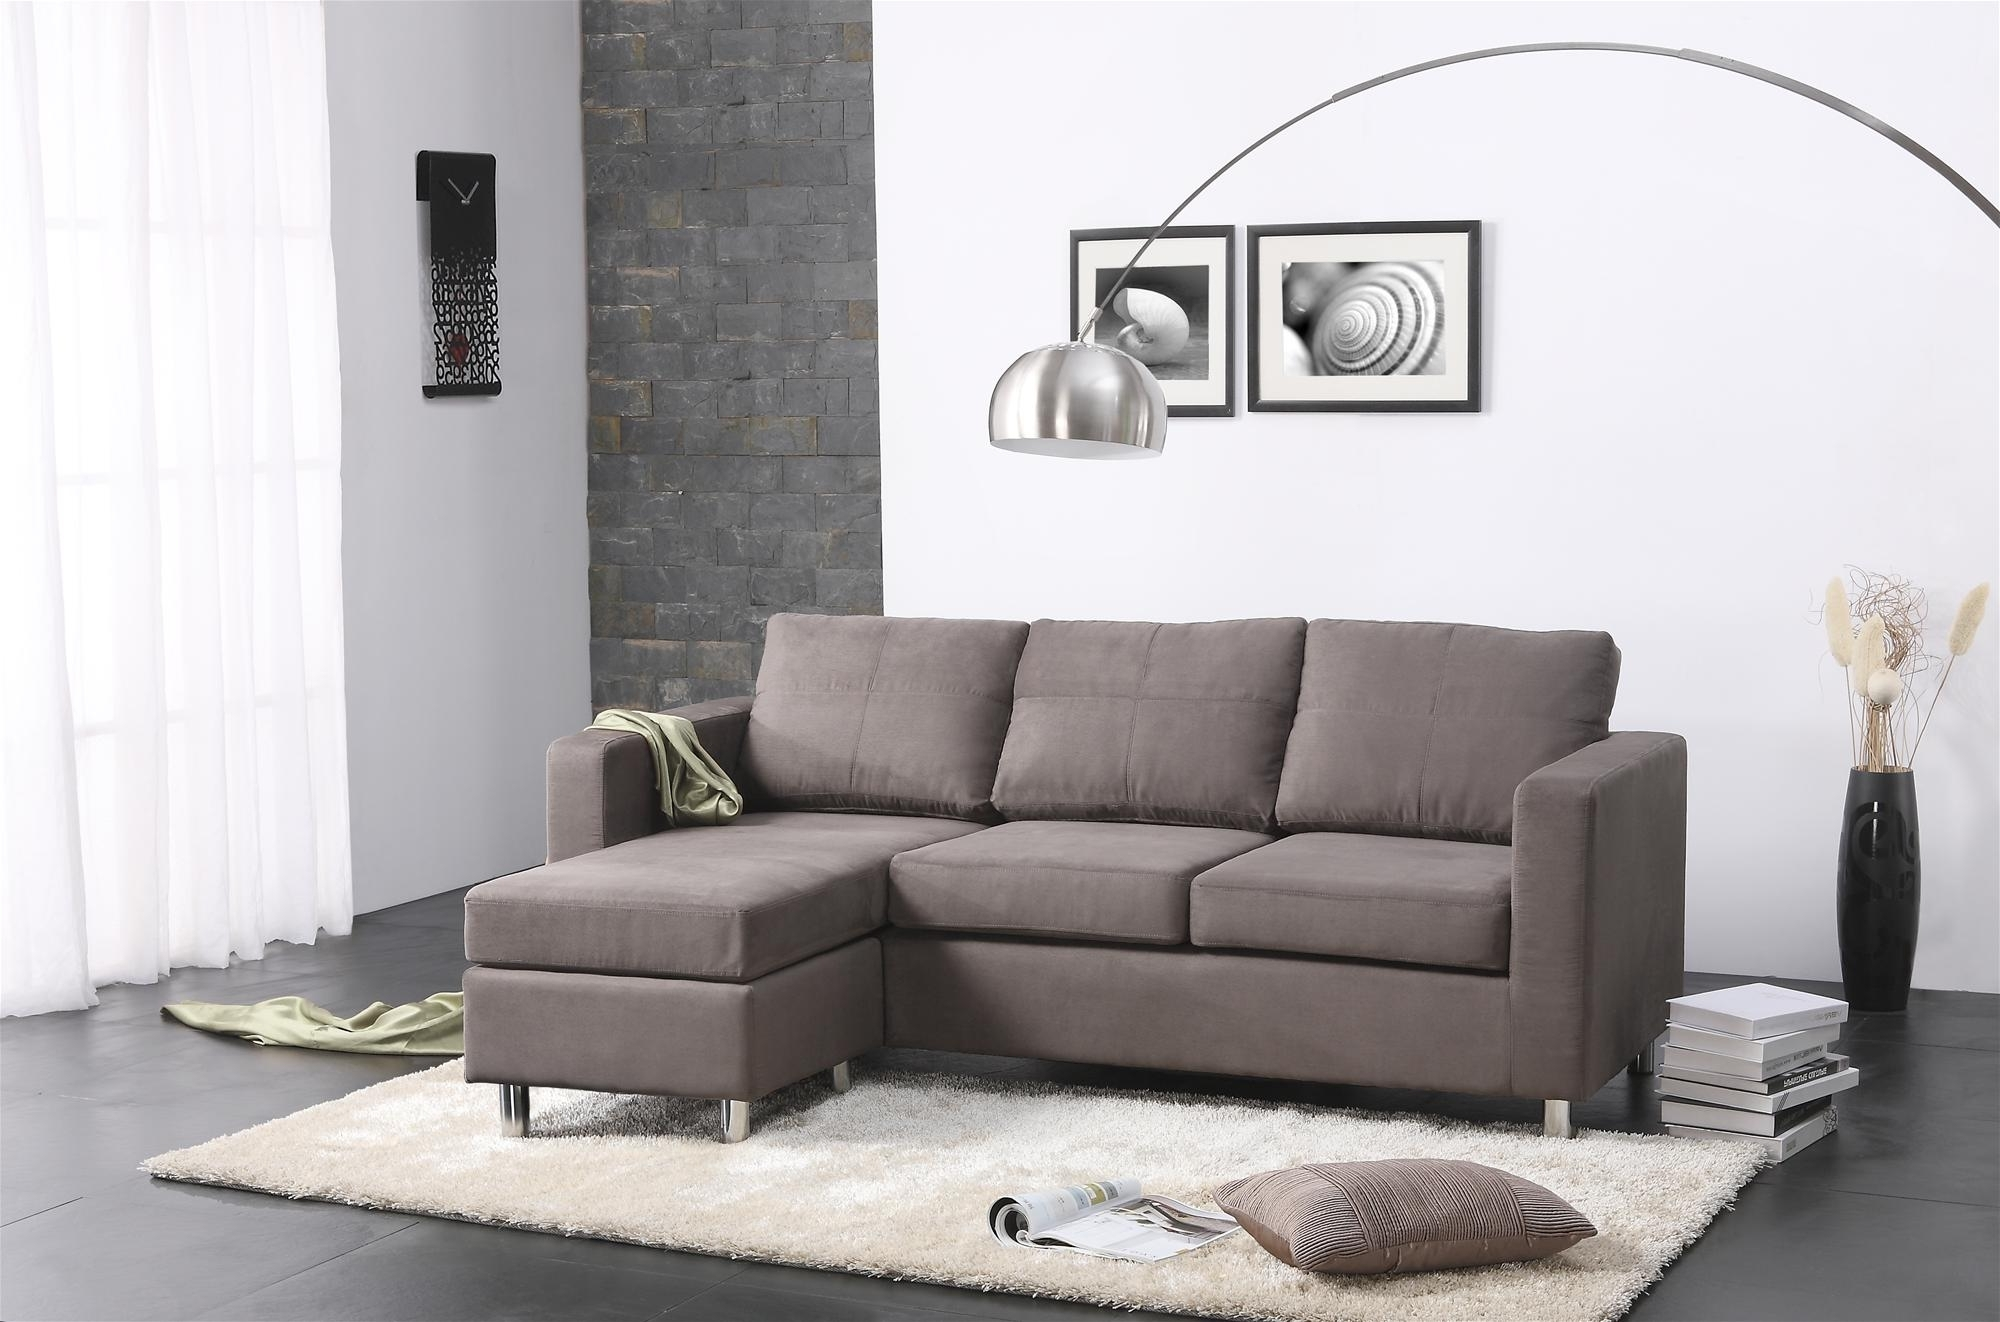 Recent Fancy Sectional Sofa For Small Spaces 46 For Contemporary Sofa Intended For Sectional Sofas For Small Rooms (View 5 of 15)